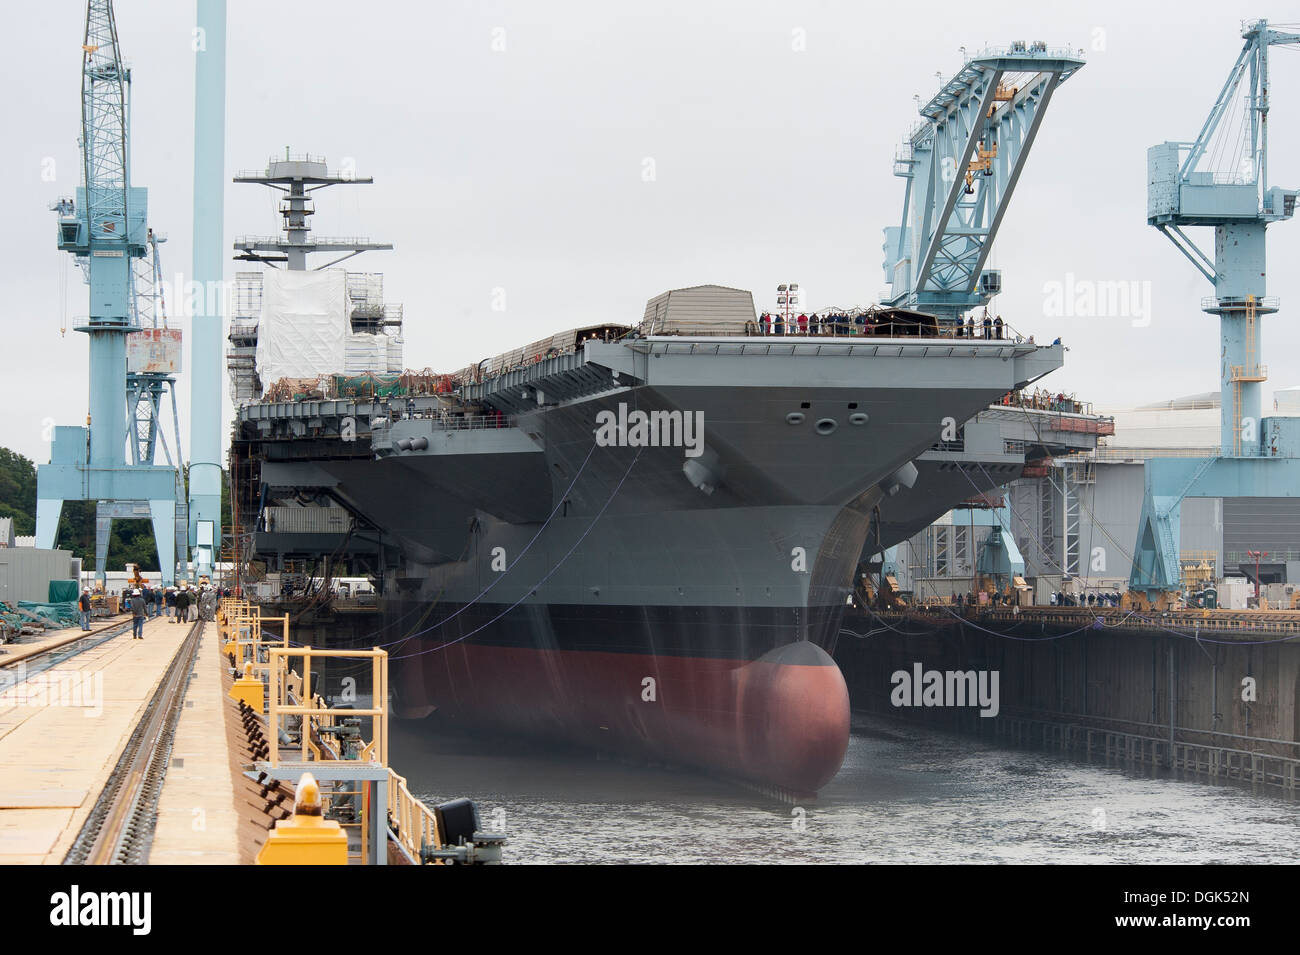 Newport News Shipbuilding floods Dry Dock 12 to float the first in class aircraft carrier, Pre-Commissioning Unit Gerald R. Ford (CVN 78). - Stock Image